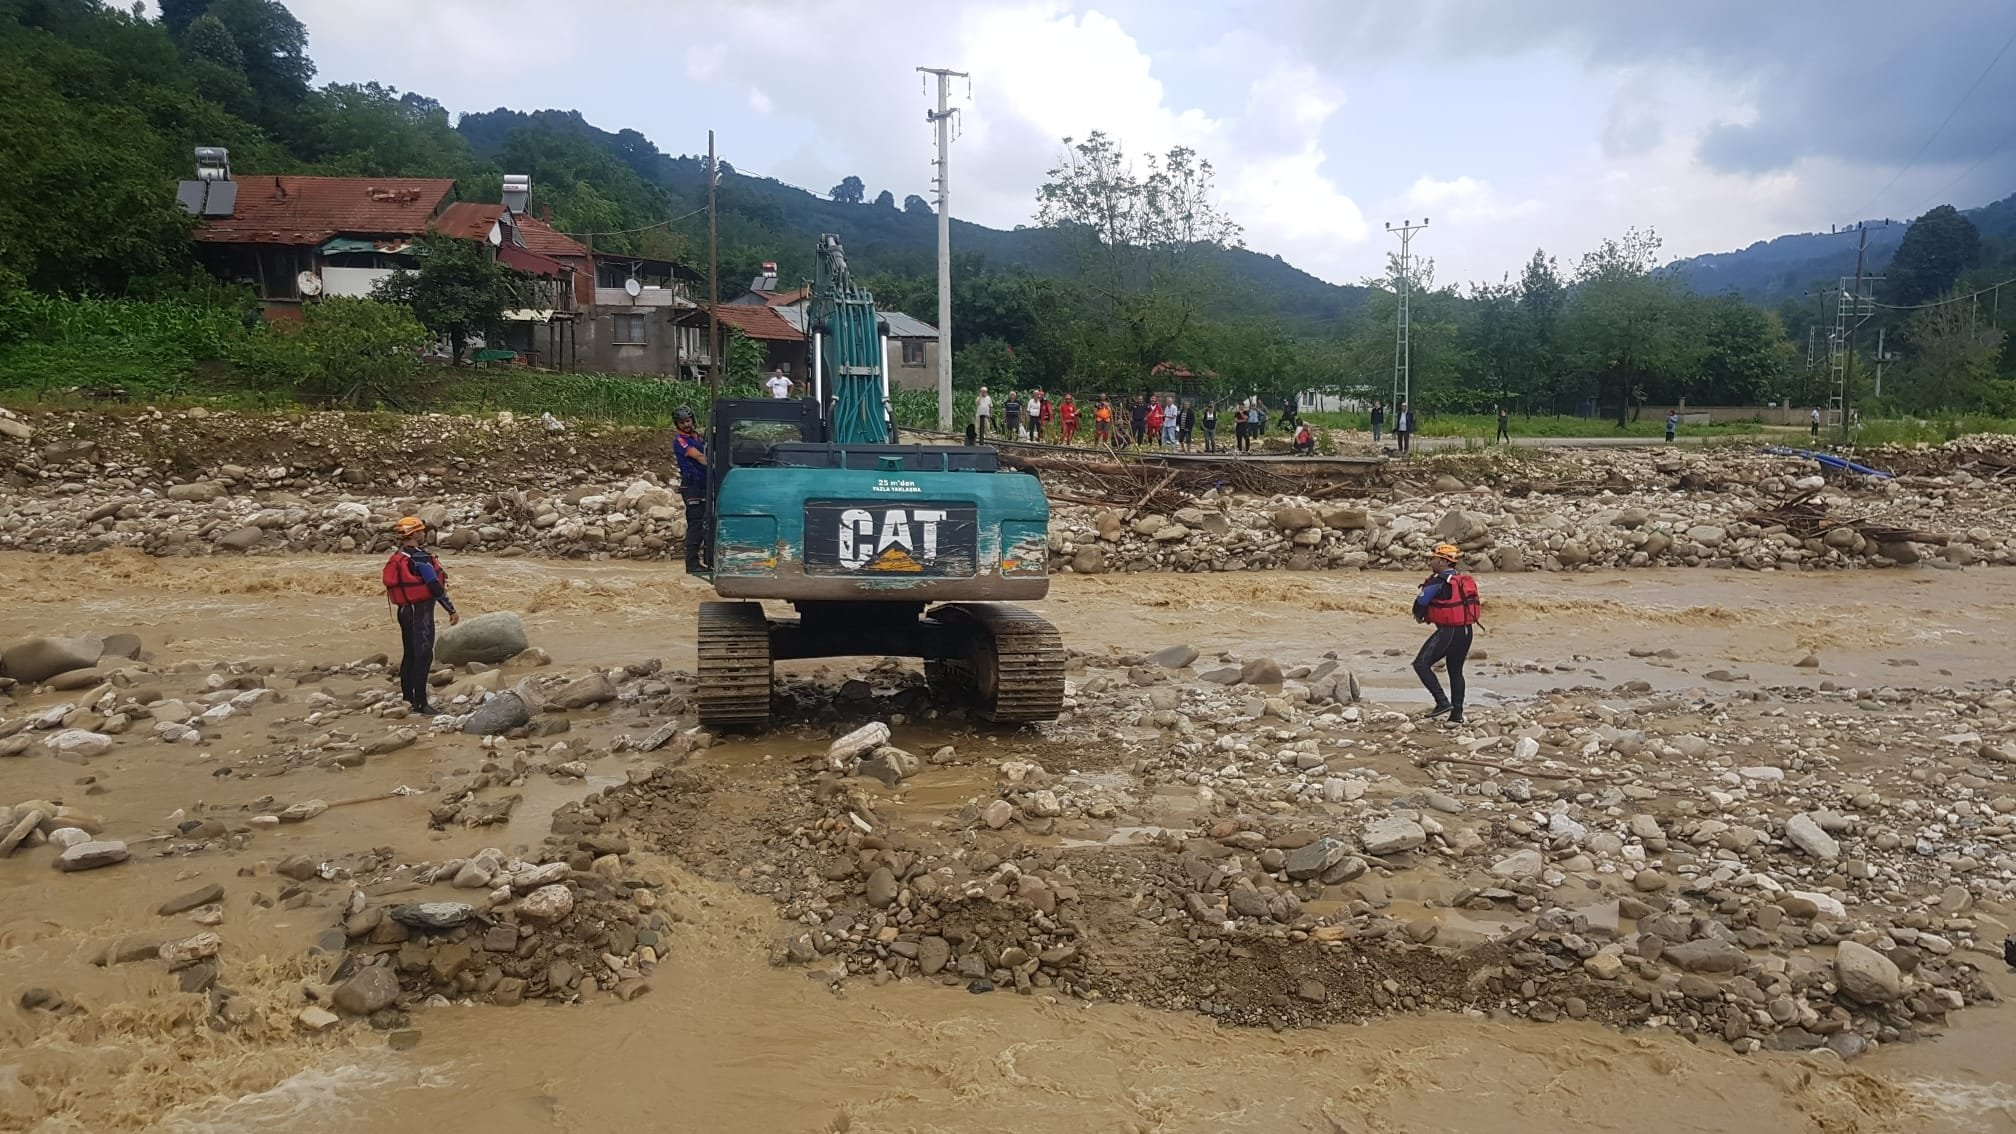 A bulldozer attempts to cross a stream to reach people stranded on the other side, in Düzce, northern Turkey, July 7, 2021. (DHA PHOTO)